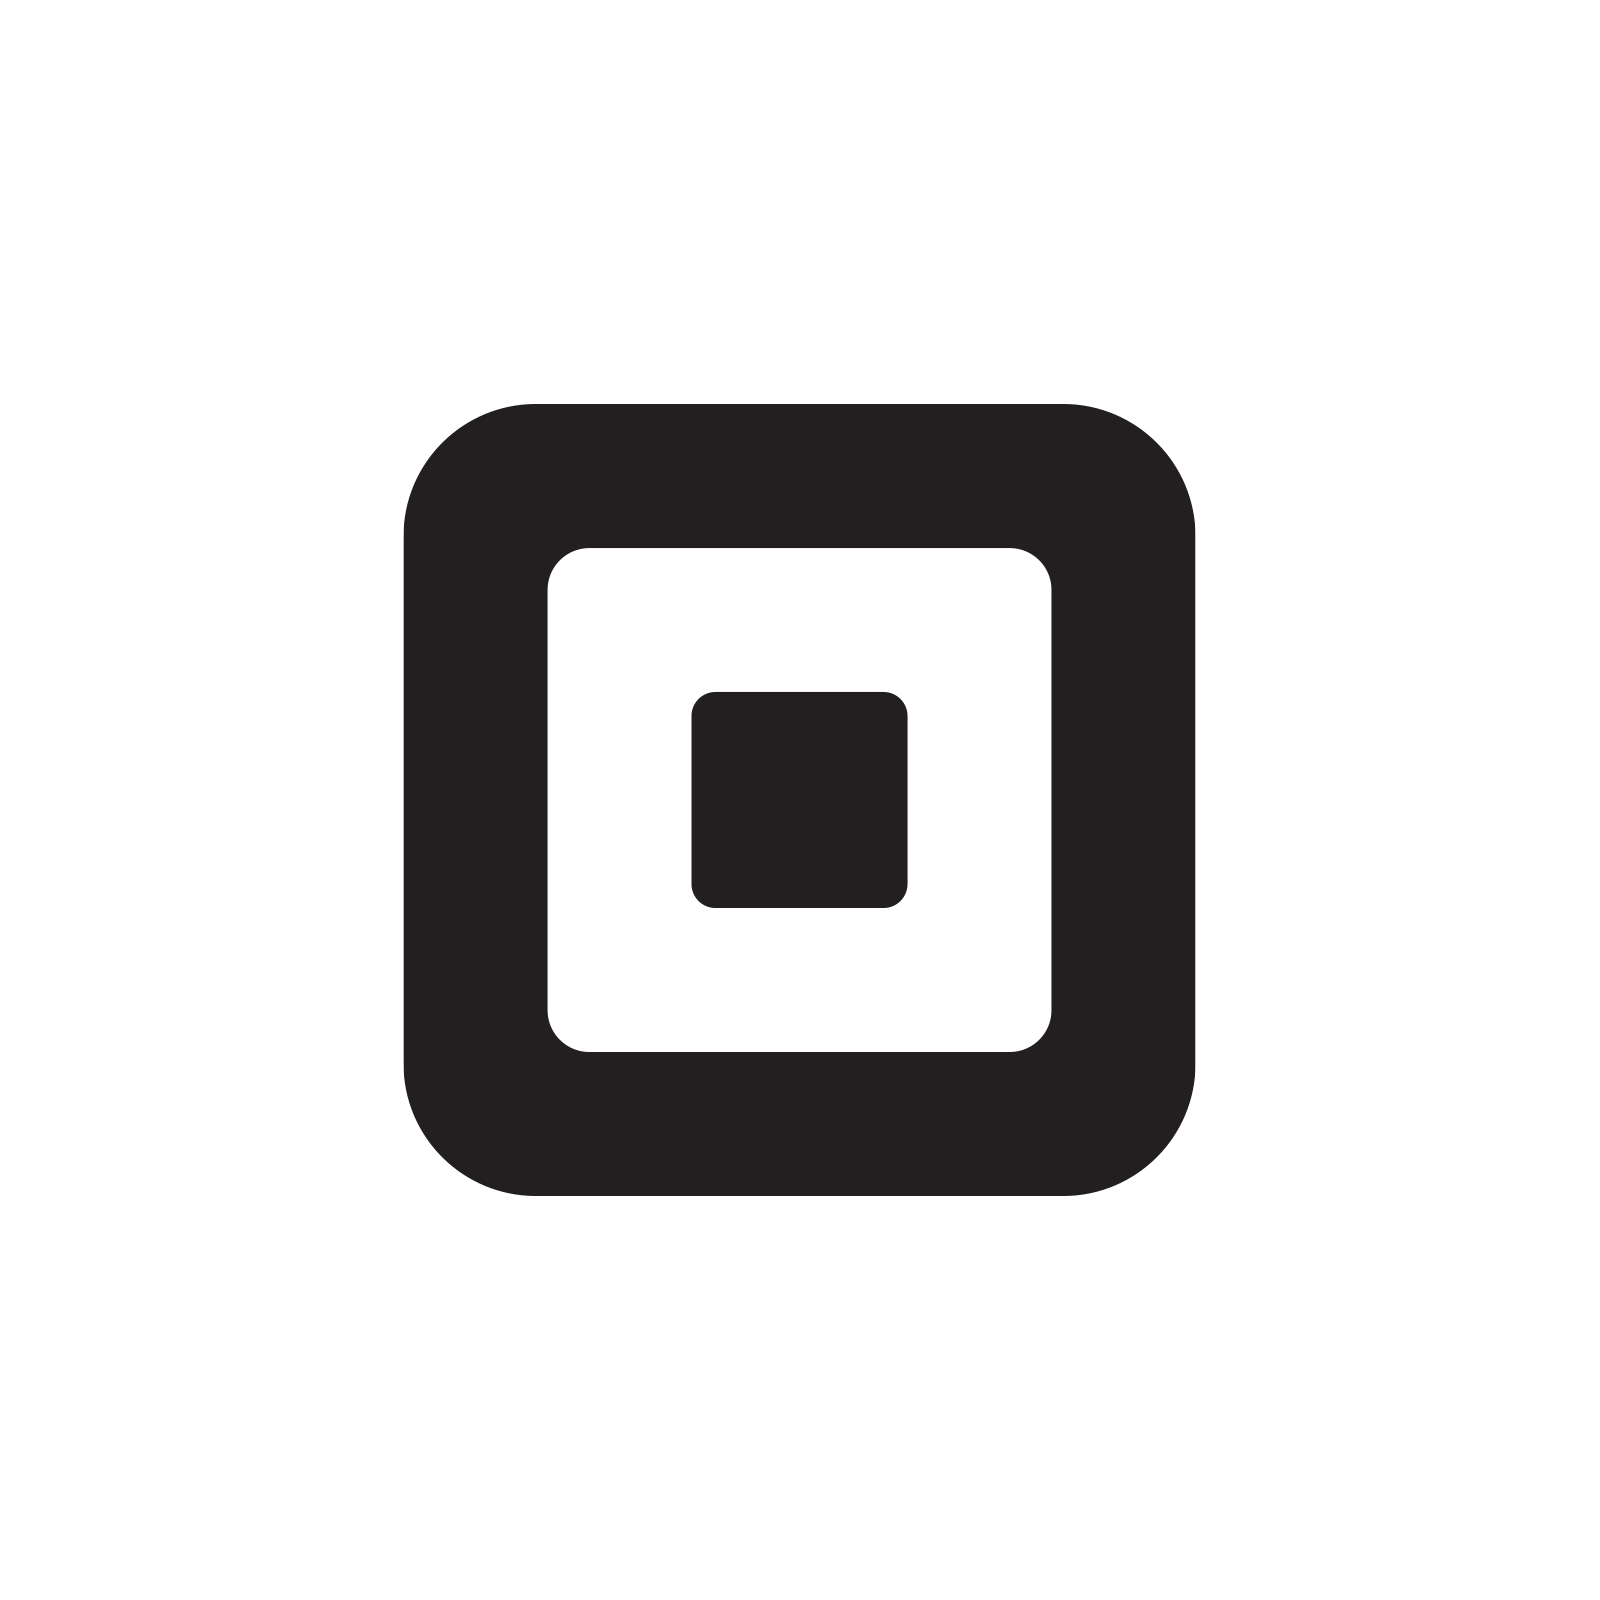 Use any credit card with Square